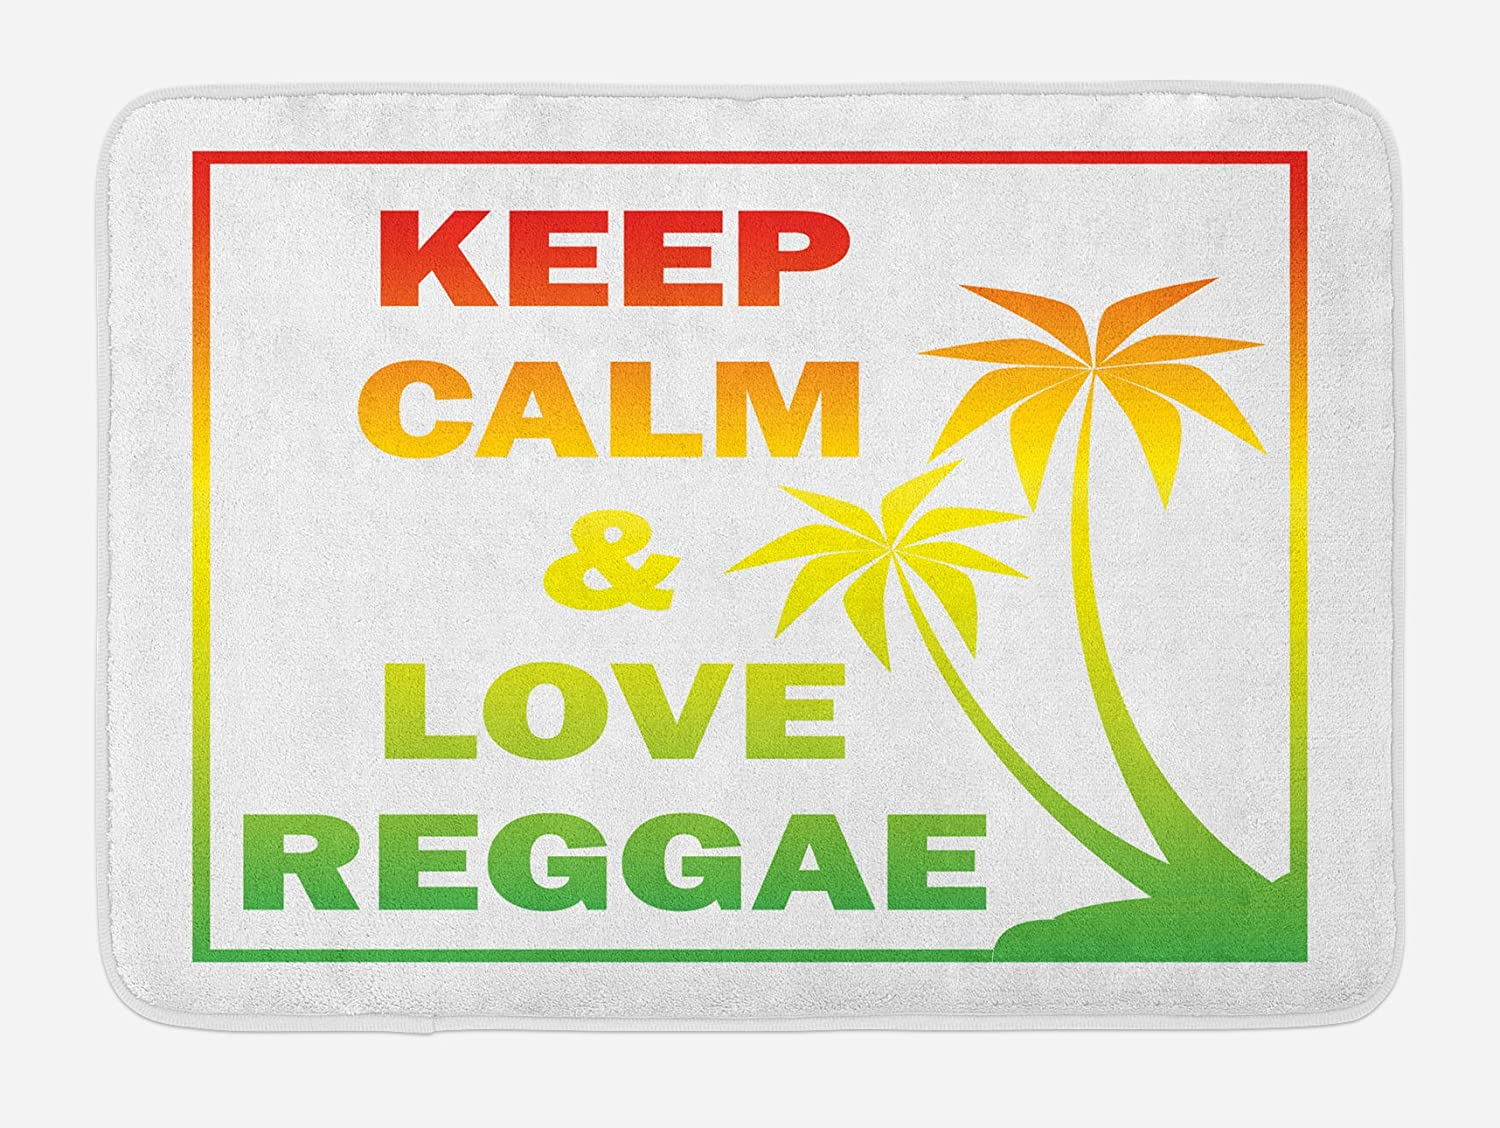 Ambesonne Rasta Bath Mat, Keep Calm and Love Reggae Words in Ombre Rainbow Colors Music Themed, Plush Bathroom Decor Mat with Non Slip Backing, 29.5 X 17.5, Green Yellow